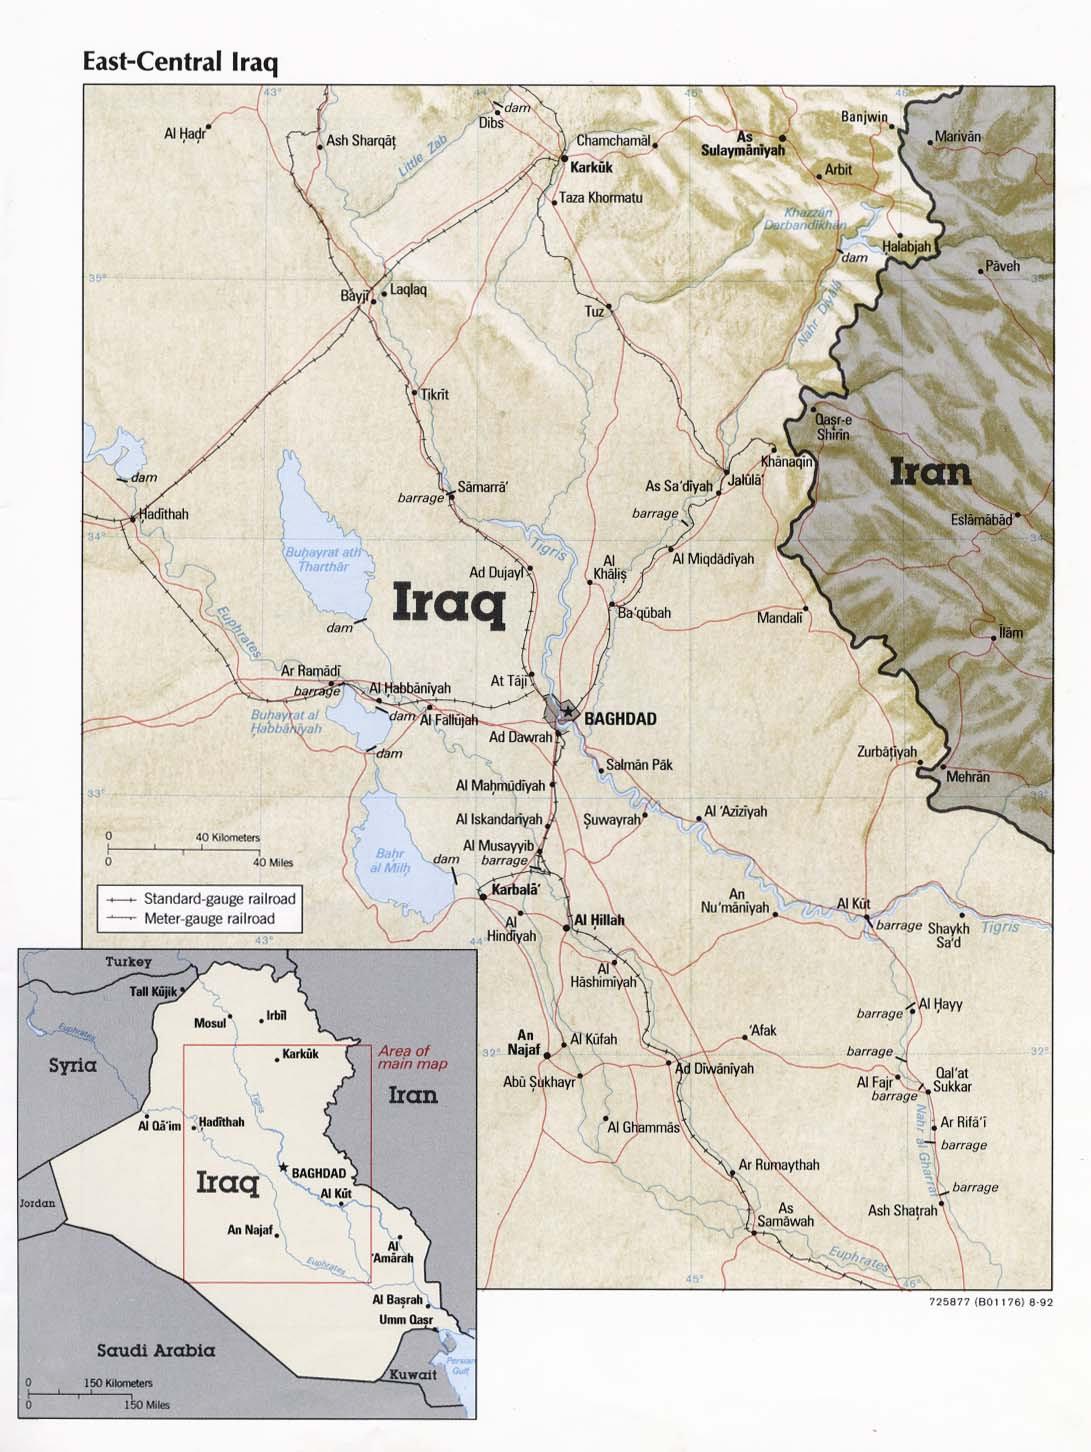 East-Central Iraq From Iraq a Map Folio CIA 1992